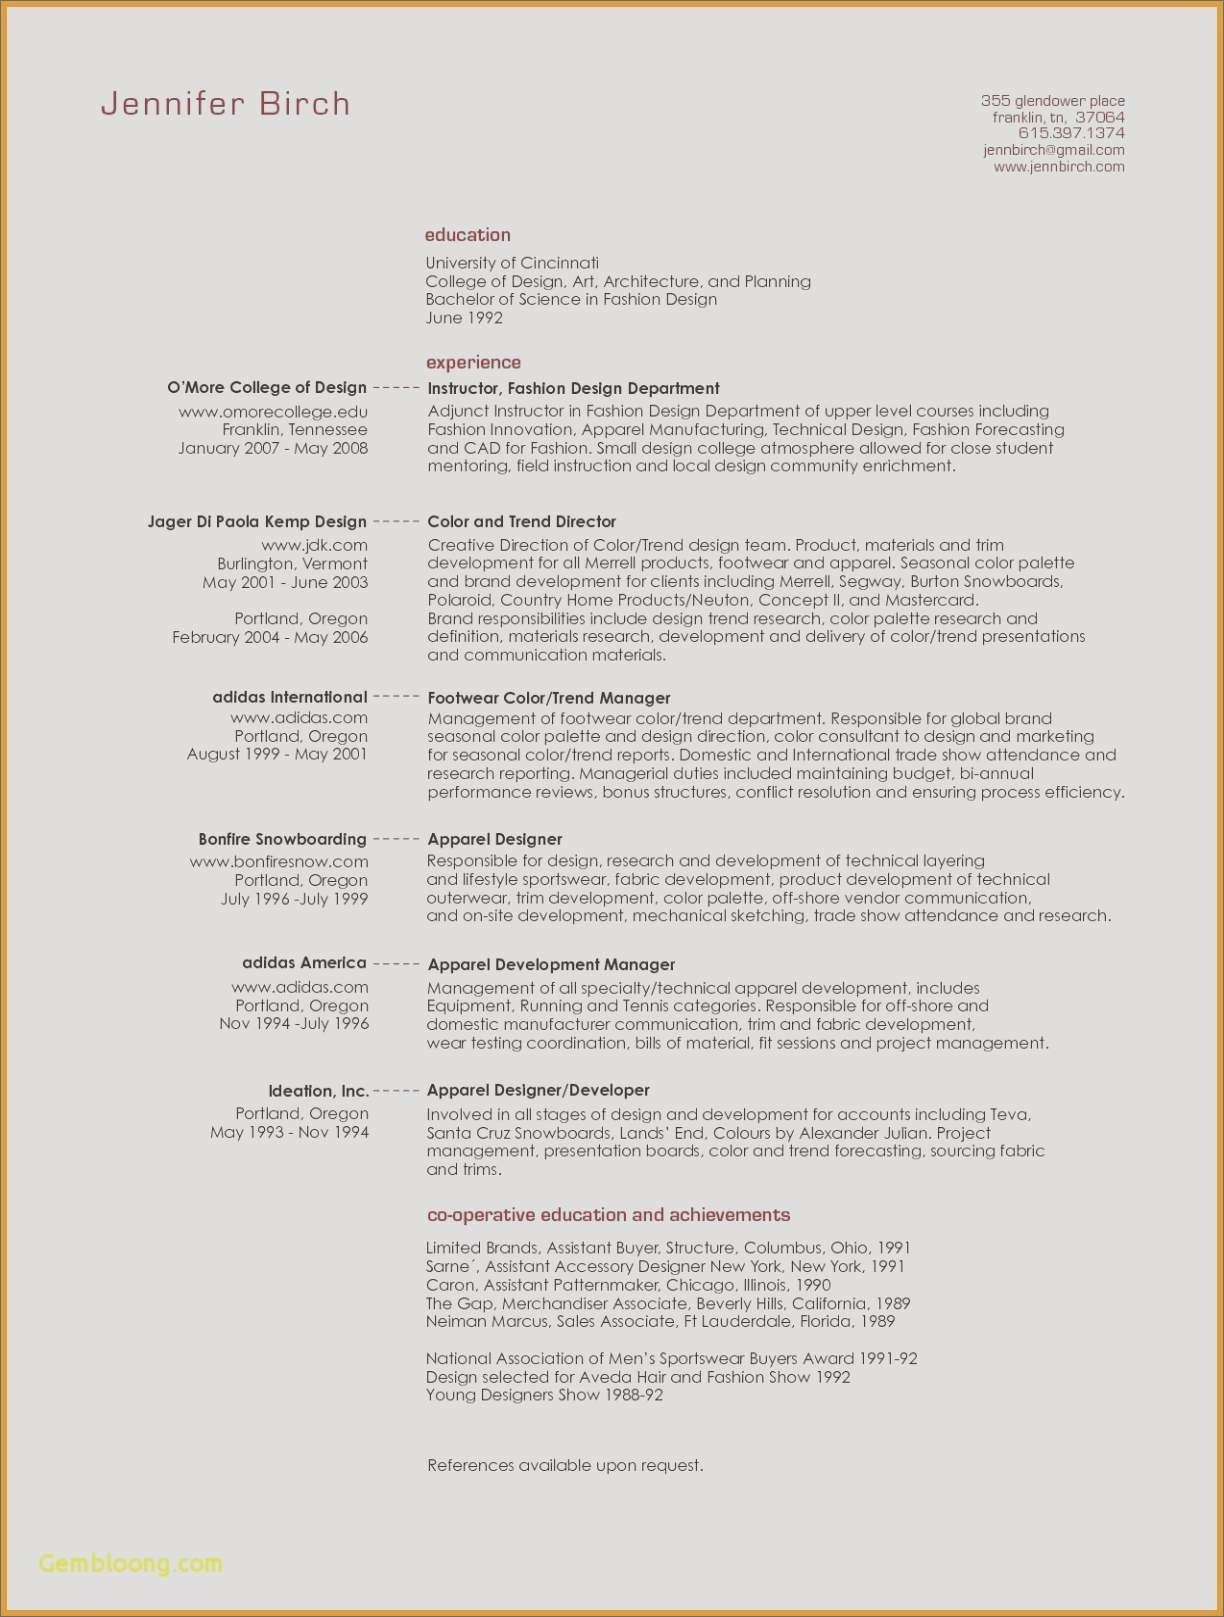 Architecture Student Resume - Sample Architect Resume New Sample Architecture Resumes Nanny Resume